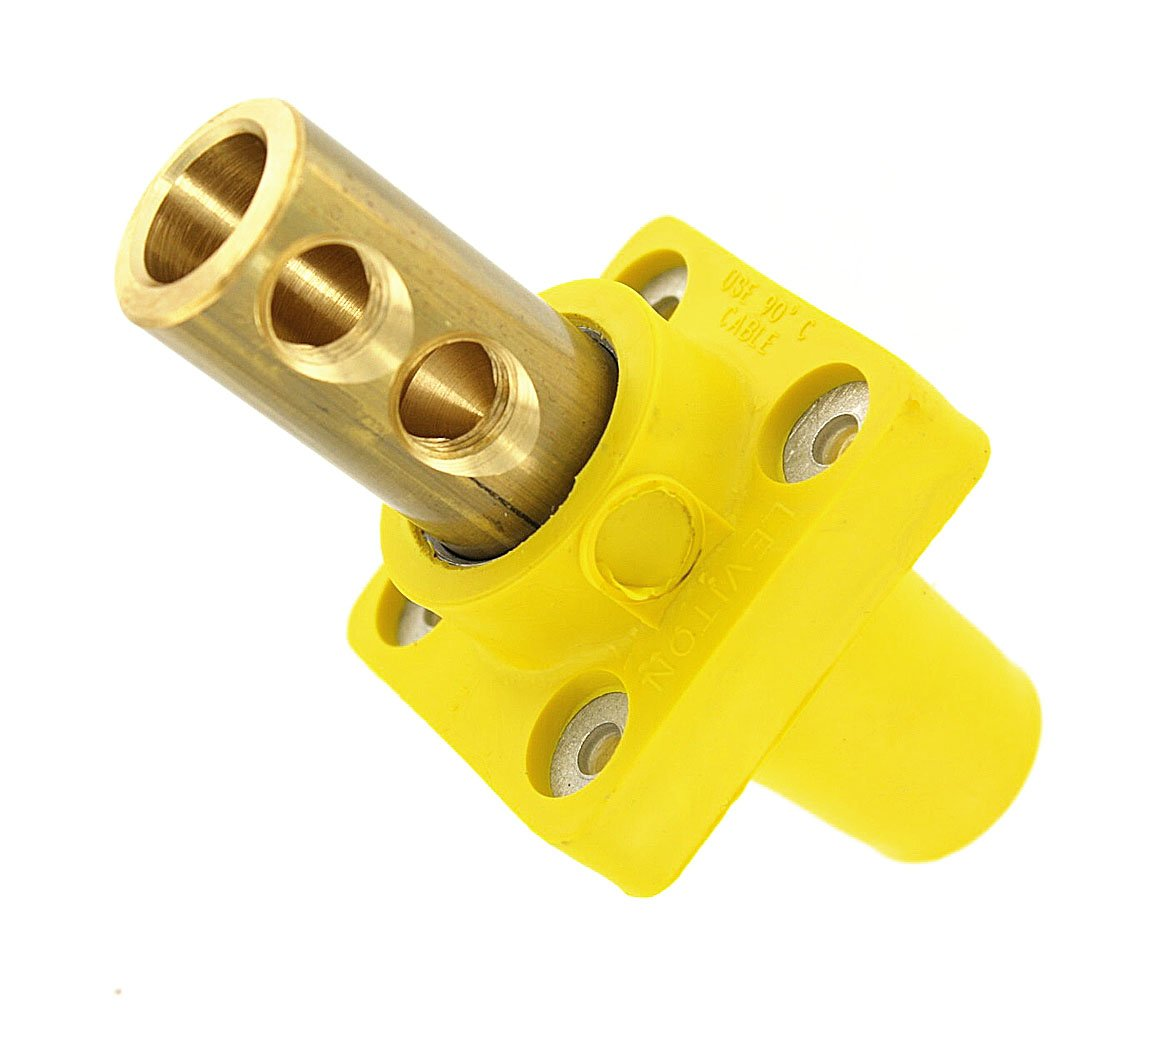 Leviton 16R22-UY 16-Series Taper Nose, 90°, Female Panel Receptacle, Cam-Type Connector, Yellow